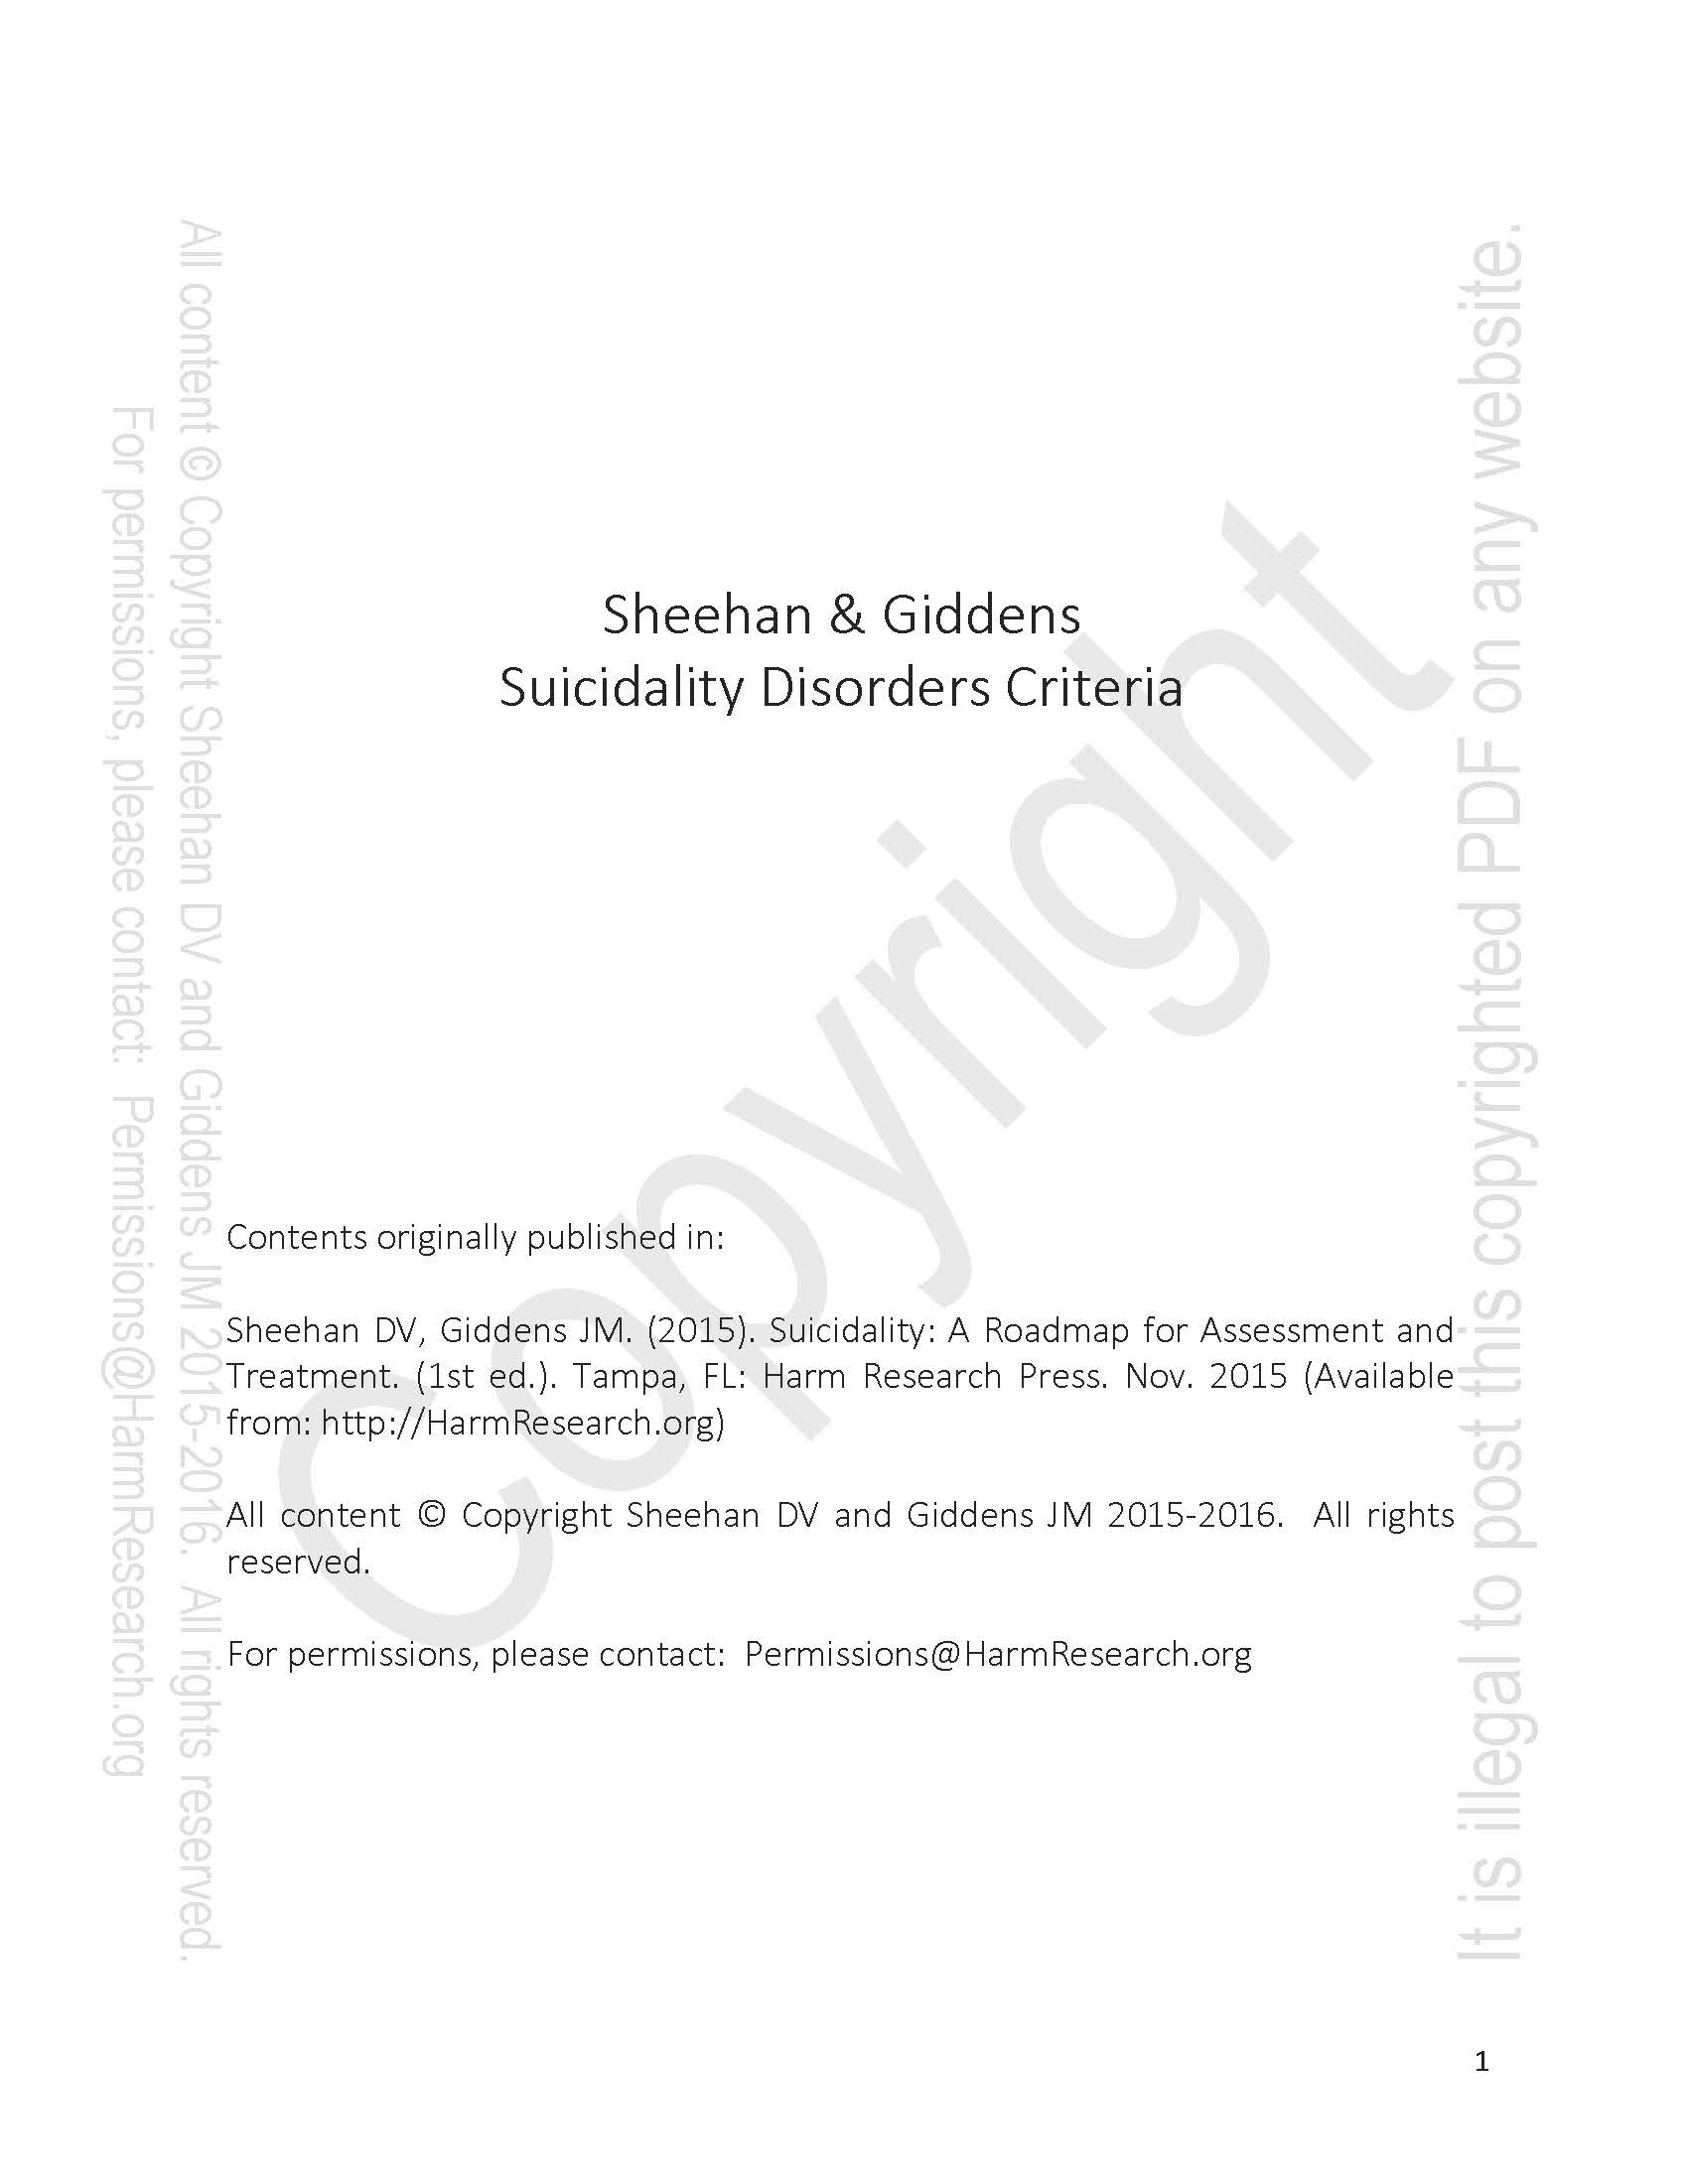 Sheehan giddens phenotypic suicidality disorders classification sheehan giddens phenotypic suicidality disorders classification and criteria 8816 harm research spiritdancerdesigns Images